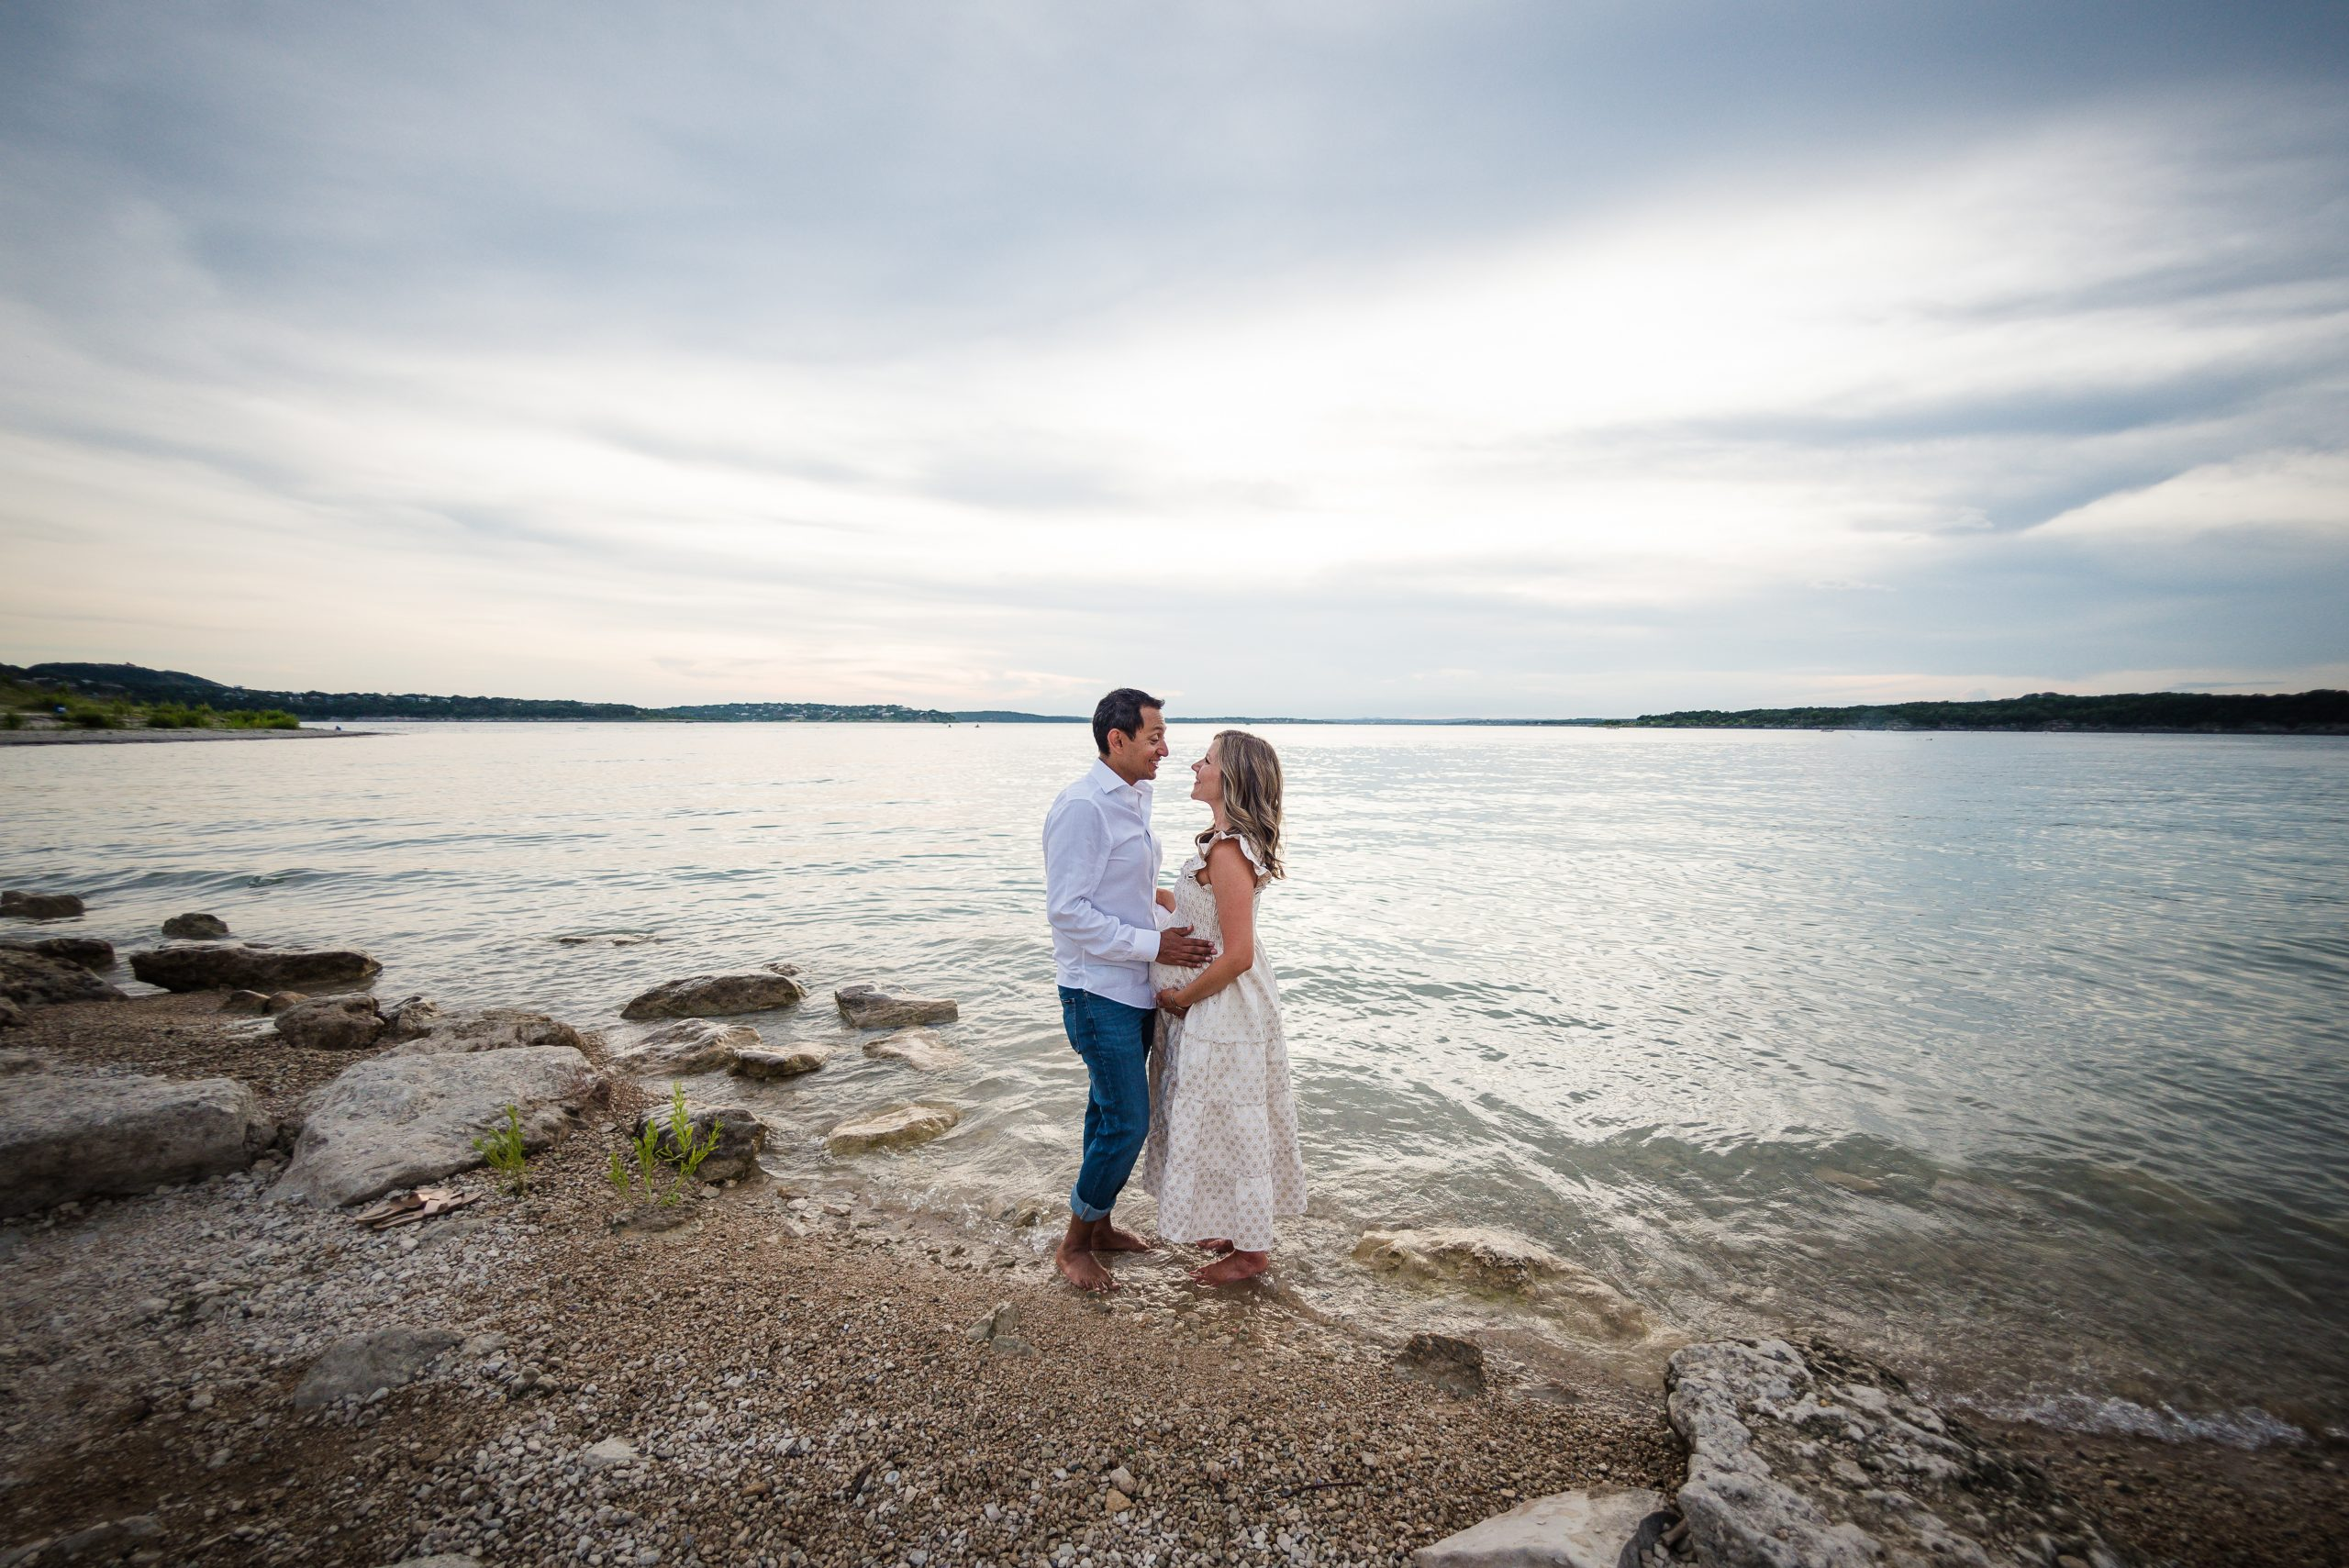 Maternity Photography Session At Canyon Lake, Texas In July Gruene Photography 30